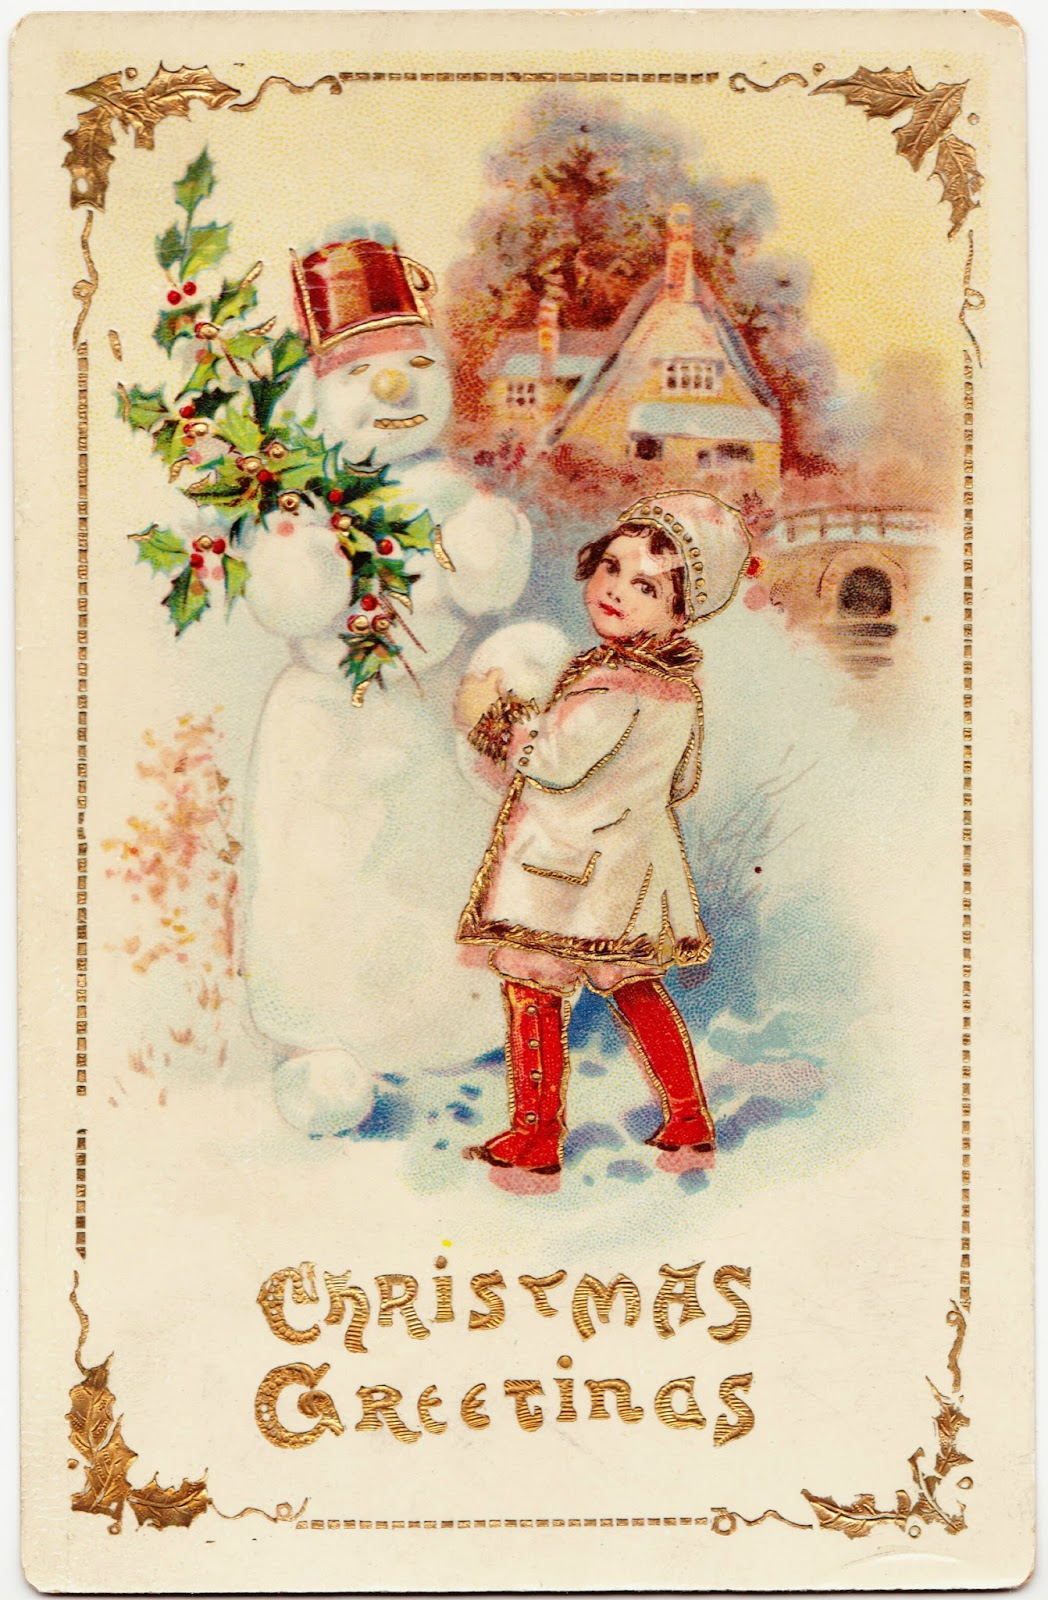 Papergreat vintage christmas greetings featuring a holly jolly this vintage christmas postcard features a cute little girl with knee high red boots hanging out with an snowman who has a branch of holly and hat that kristyandbryce Images